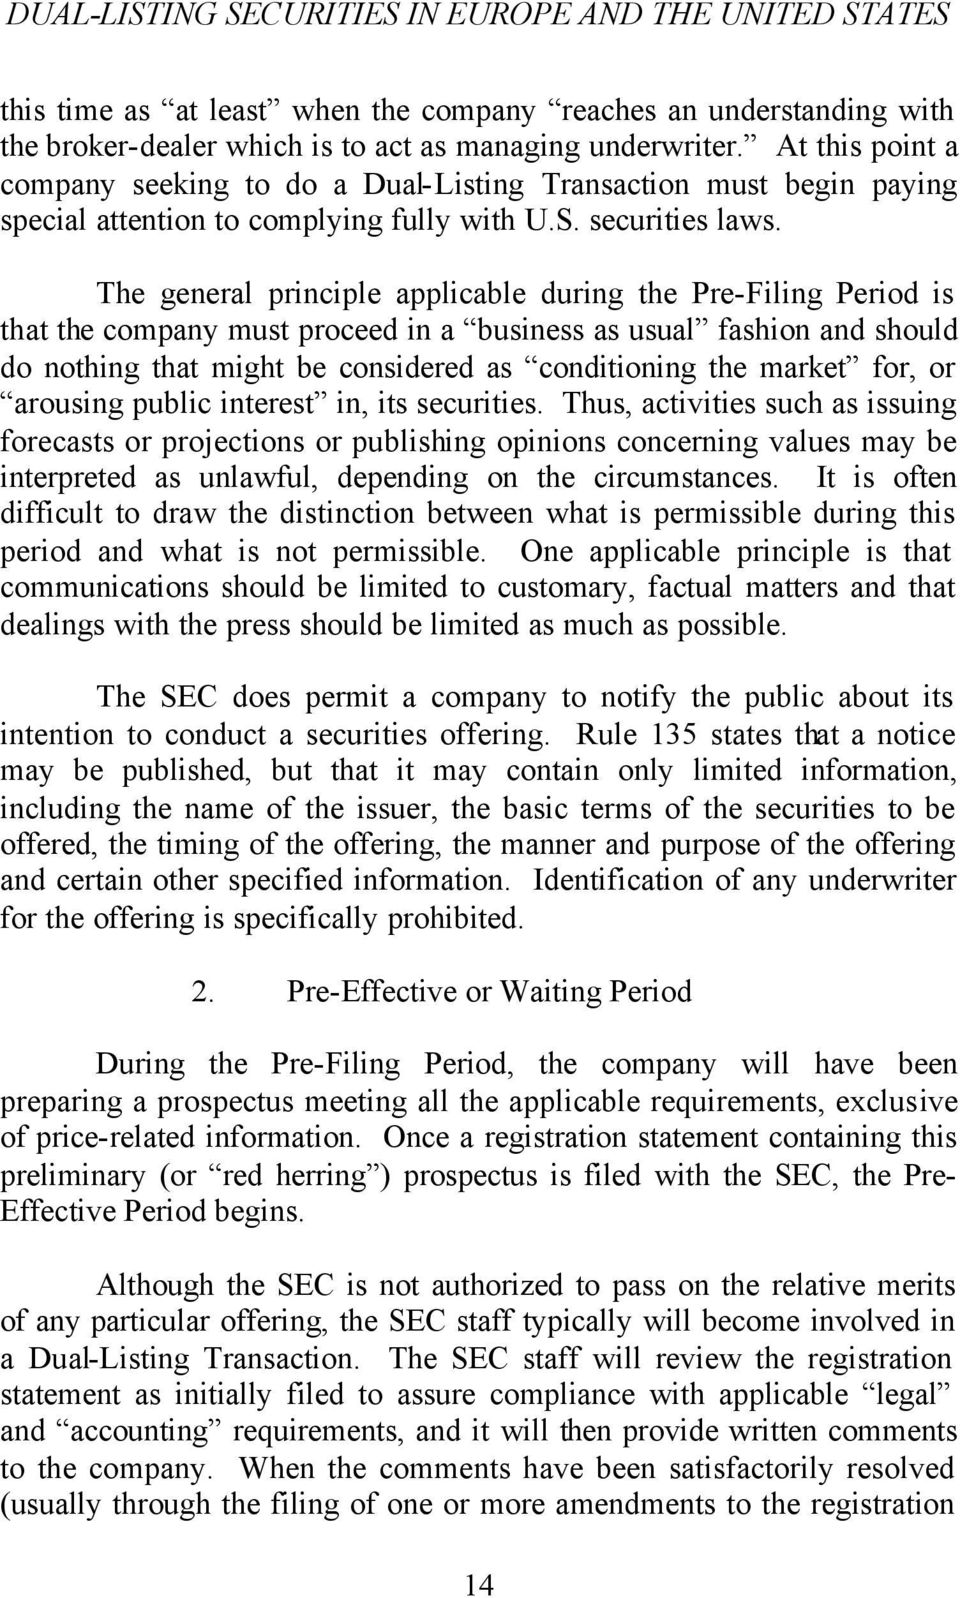 The general principle applicable during the Pre-Filing Period is that the company must proceed in a business as usual fashion and should do nothing that might be considered as conditioning the market